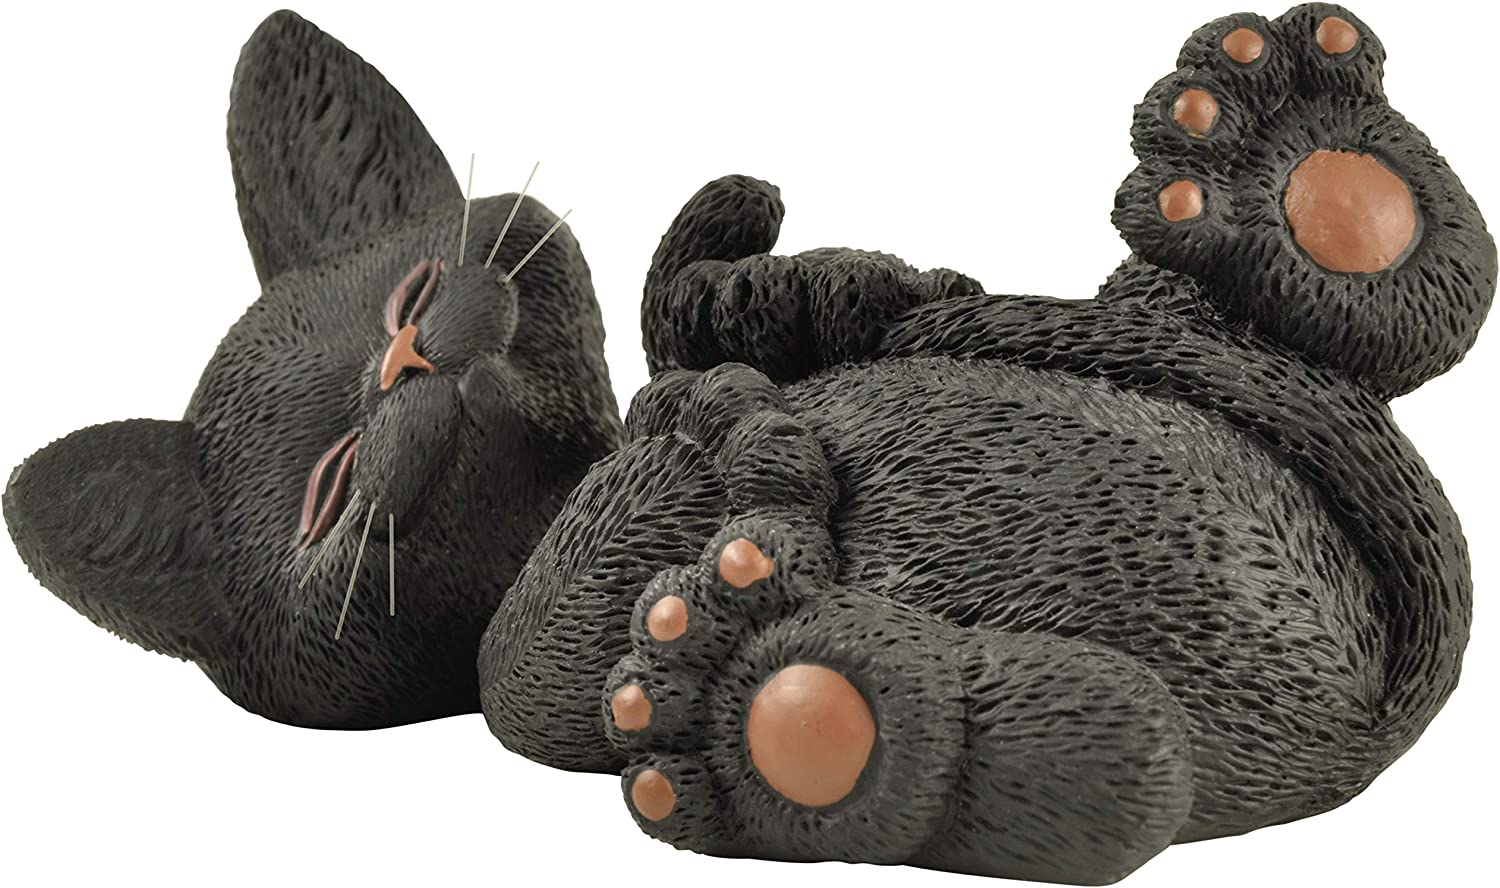 Whimsical Black Cat Playing with Tail Figurine Cute Collectible - Happy Cat Collection - Cat Lover Gifts for Women, Cat Lover Gifts for Men, Cute Cat Gifts, Cat Office Desk Accessories